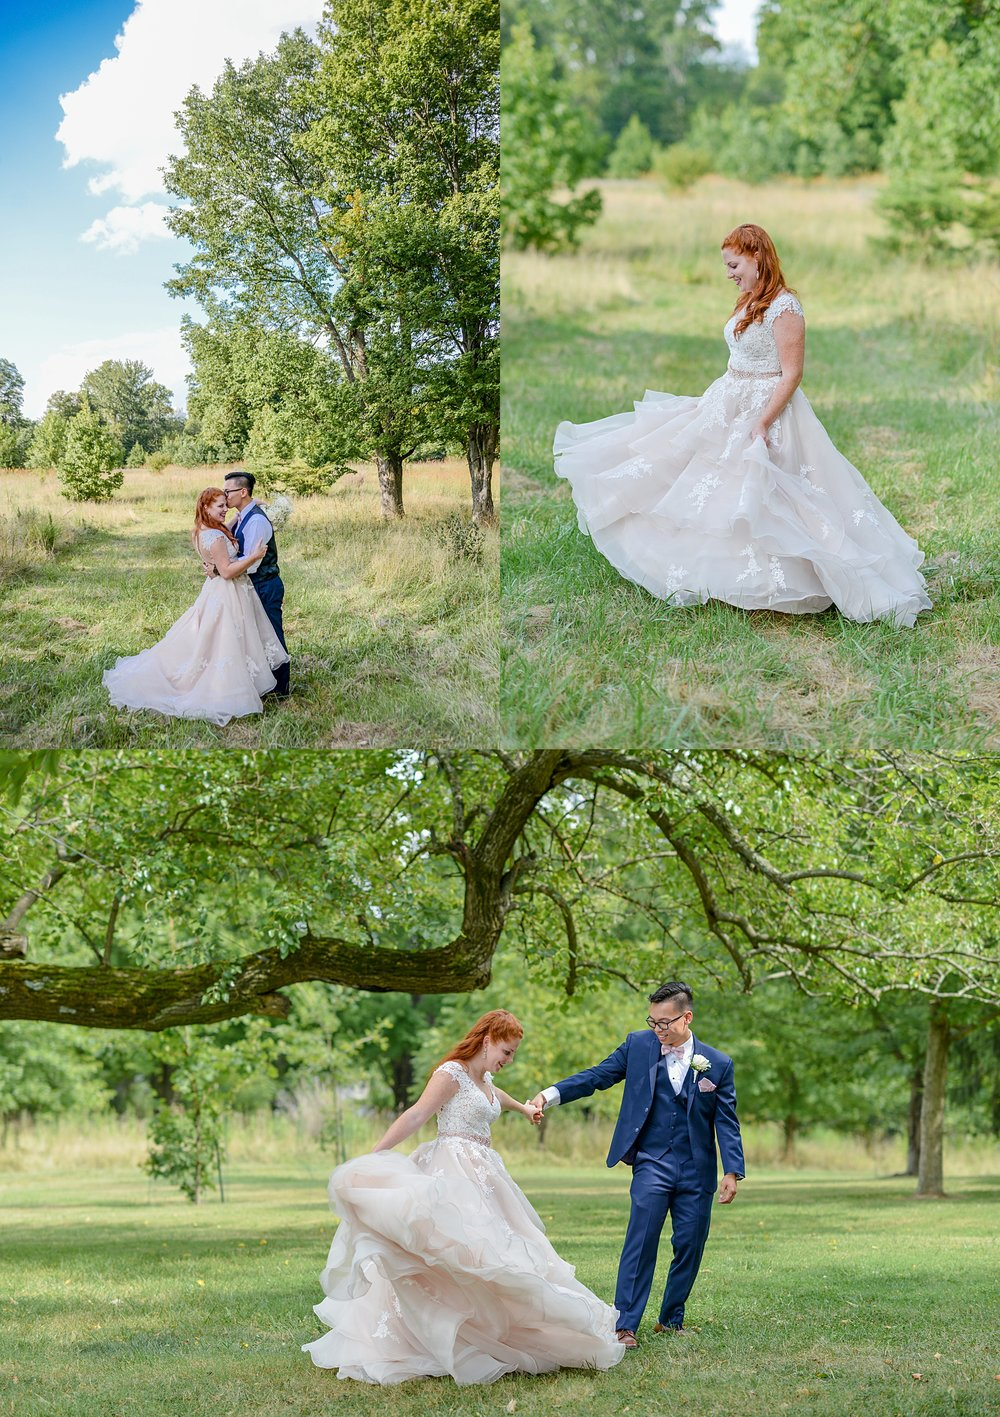 Fun Colorful Joyful Indiana Wedding Photographer - Indianapolis - Alison Mae Photography_2400.jpg